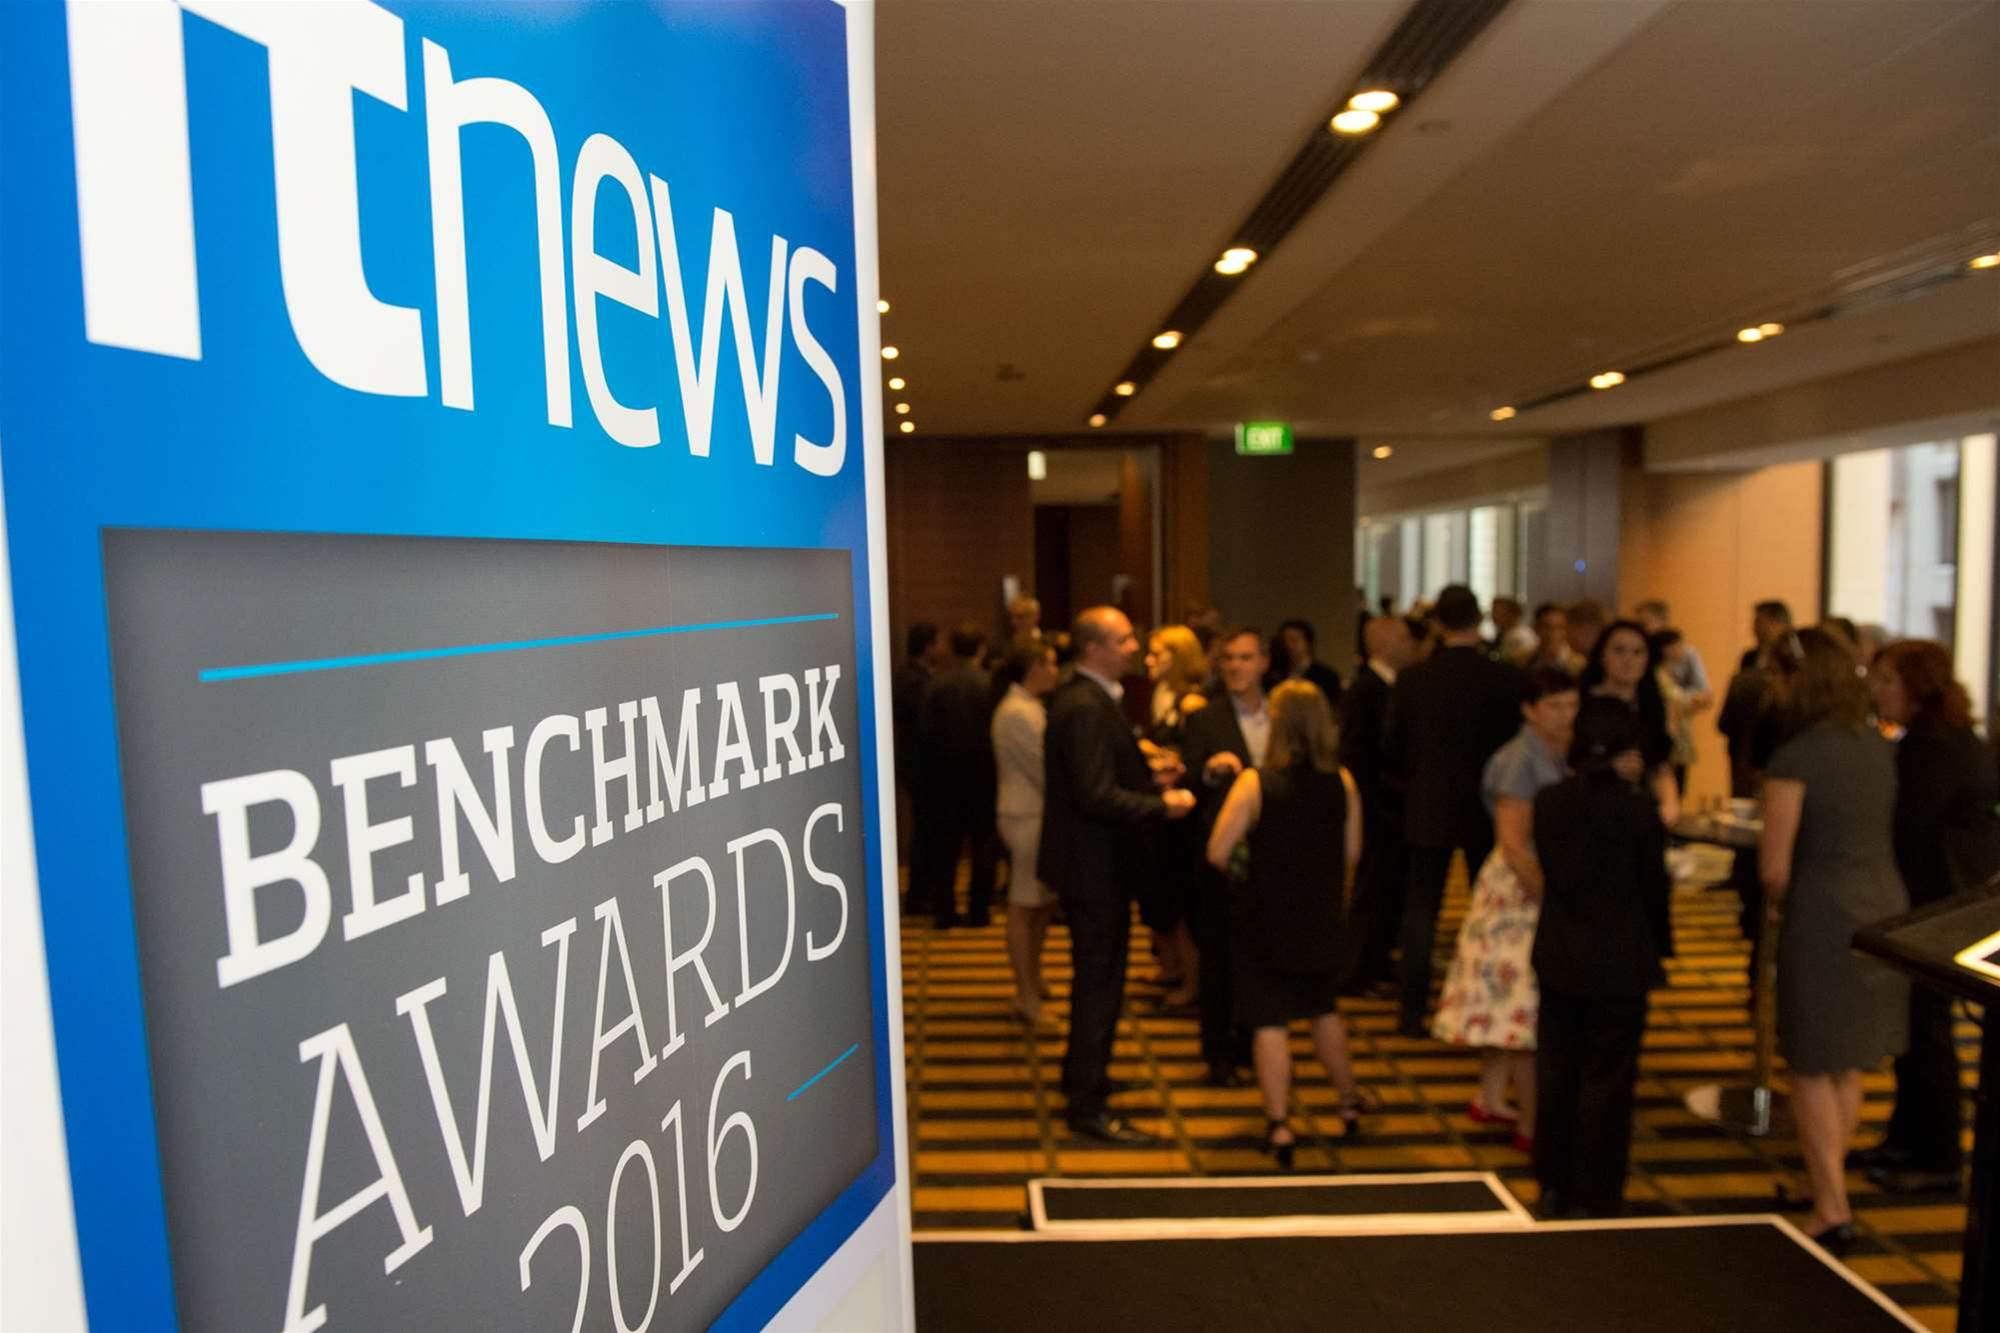 Photos: The 2016 Benchmark finalists revealed